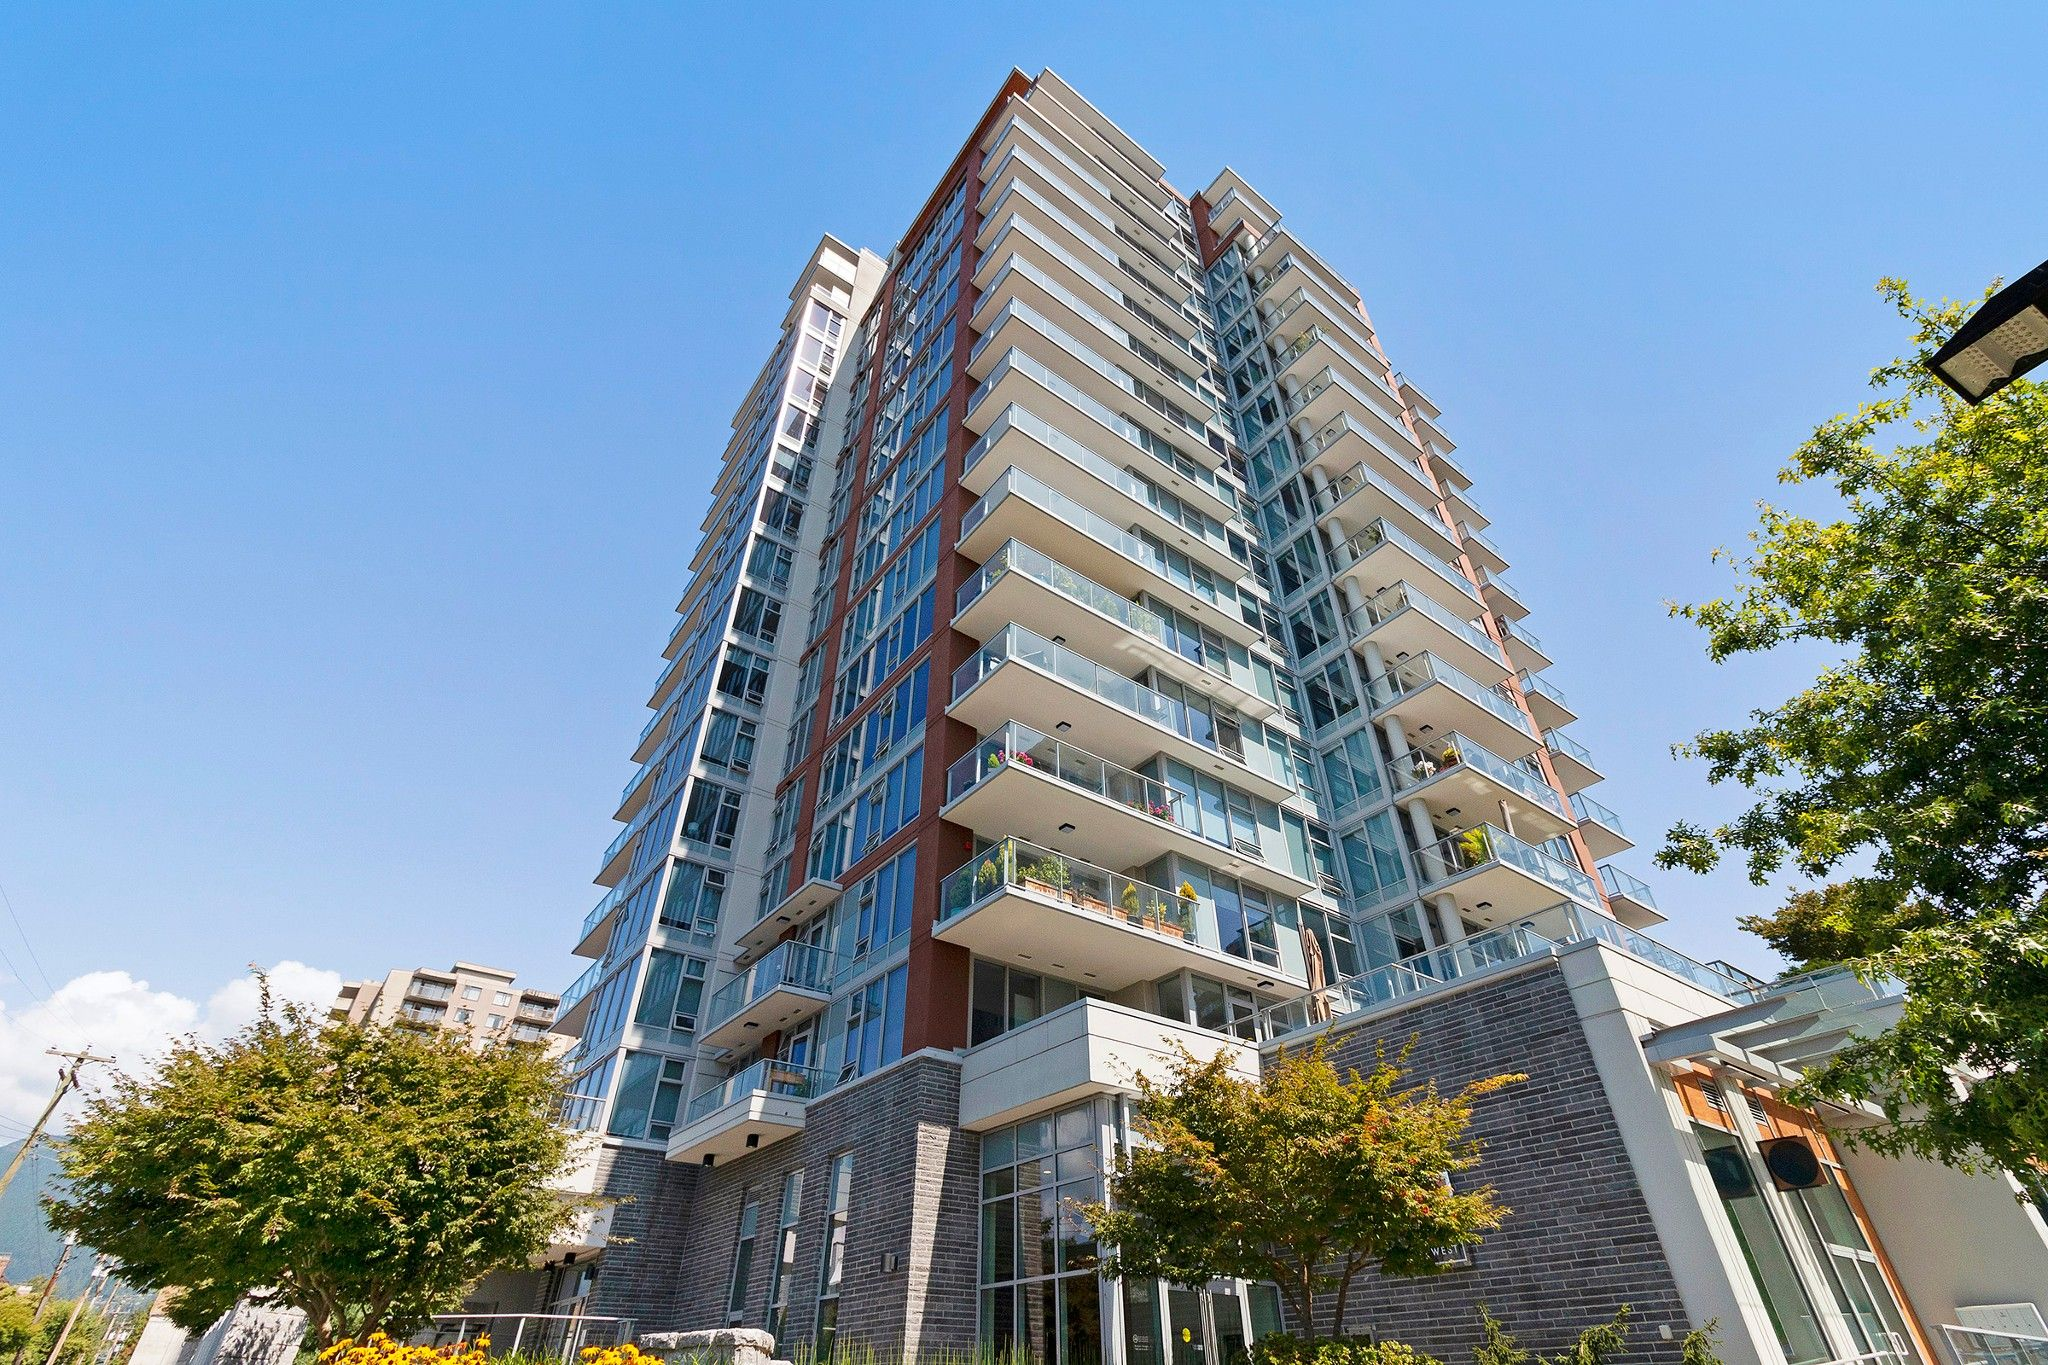 """Main Photo: 603 150 W 15TH Street in North Vancouver: Central Lonsdale Condo for sale in """"15 West"""" : MLS®# R2397830"""